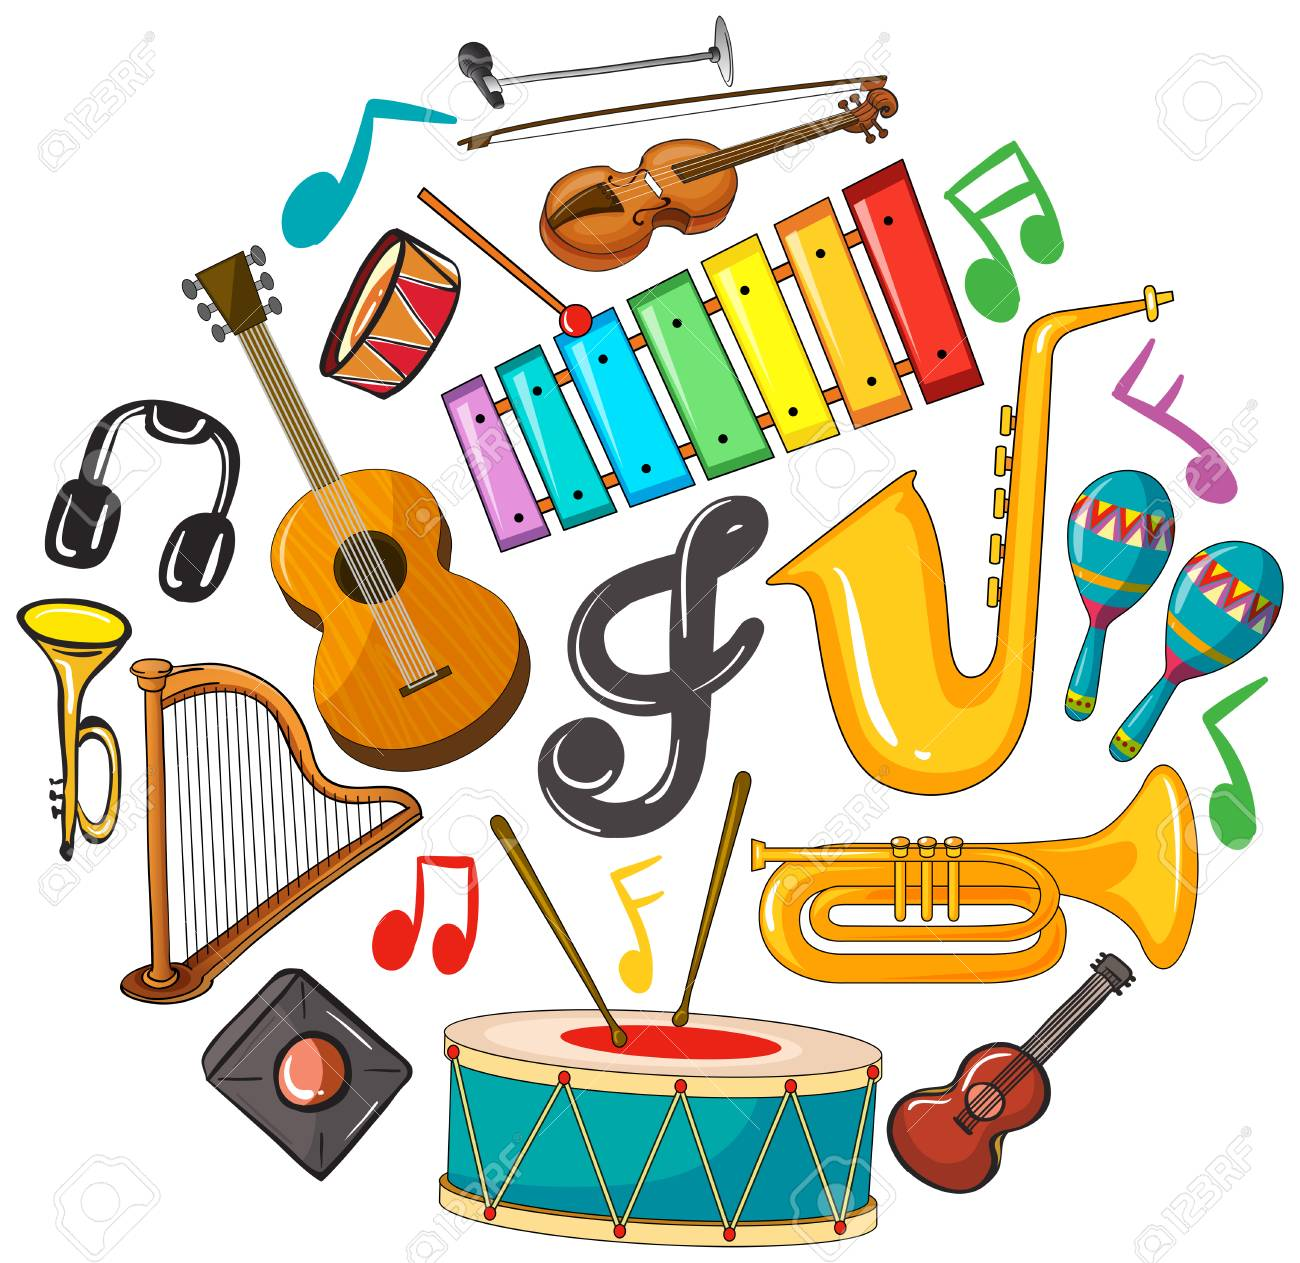 Different Types Of Musical Instruments Illustration Royalty Free Cliparts Vectors And Stock Illustration Image 84578637